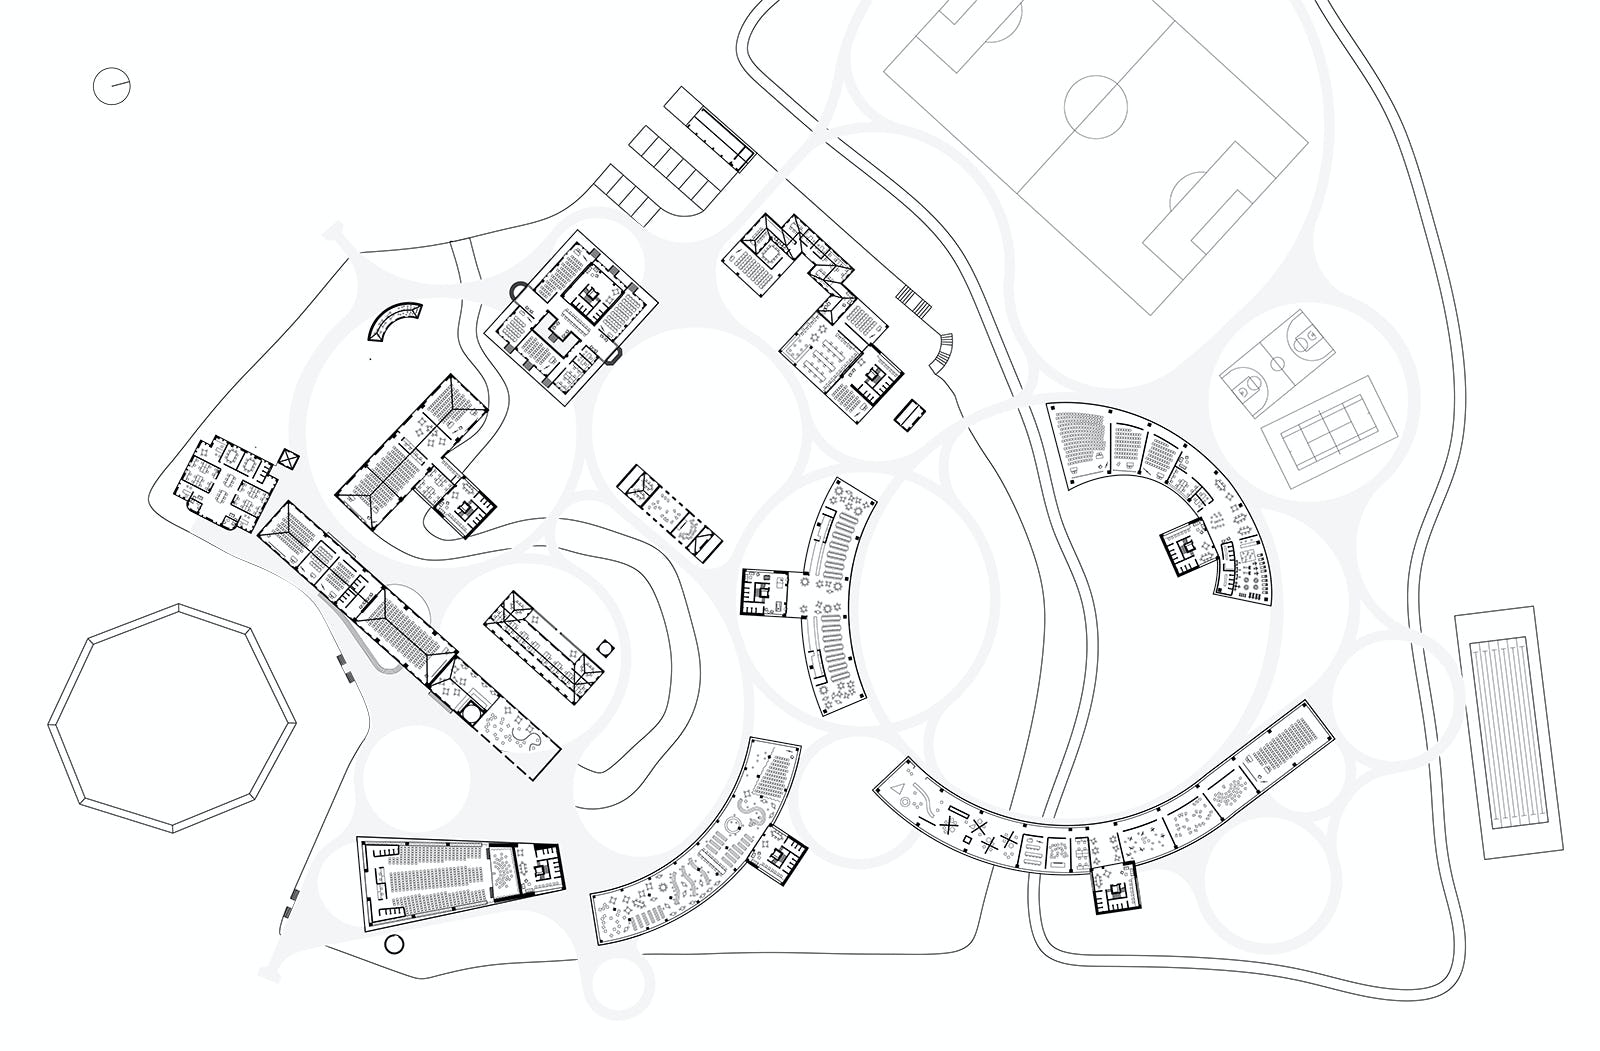 Fantasticoffense universityisland island plans buildings